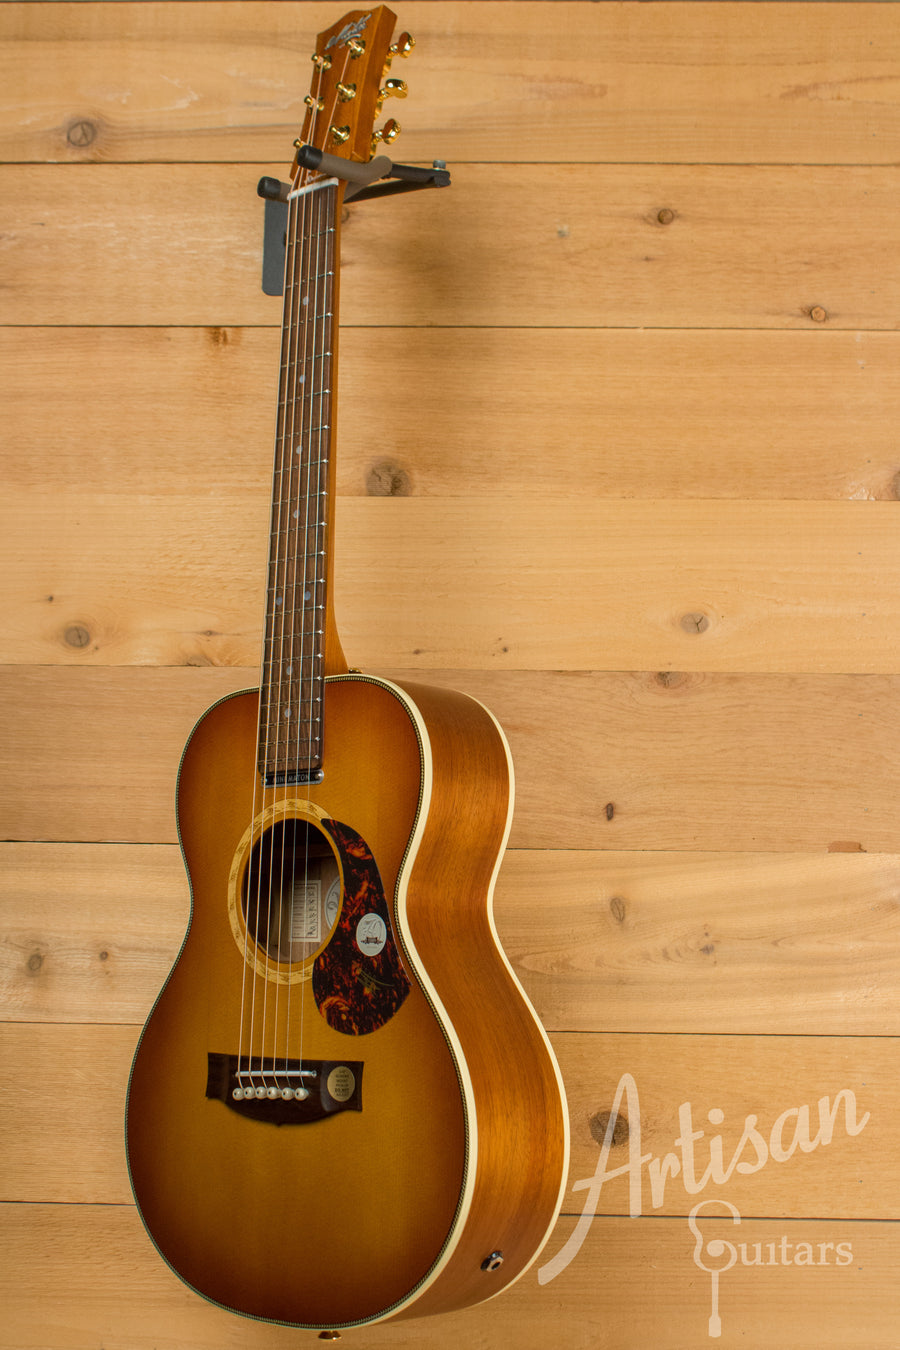 Maton EMD6 Mini Maton Diesel Sitka with Blackwood and Vintage Amber Sunburst ID-11210 - Artisan Guitars